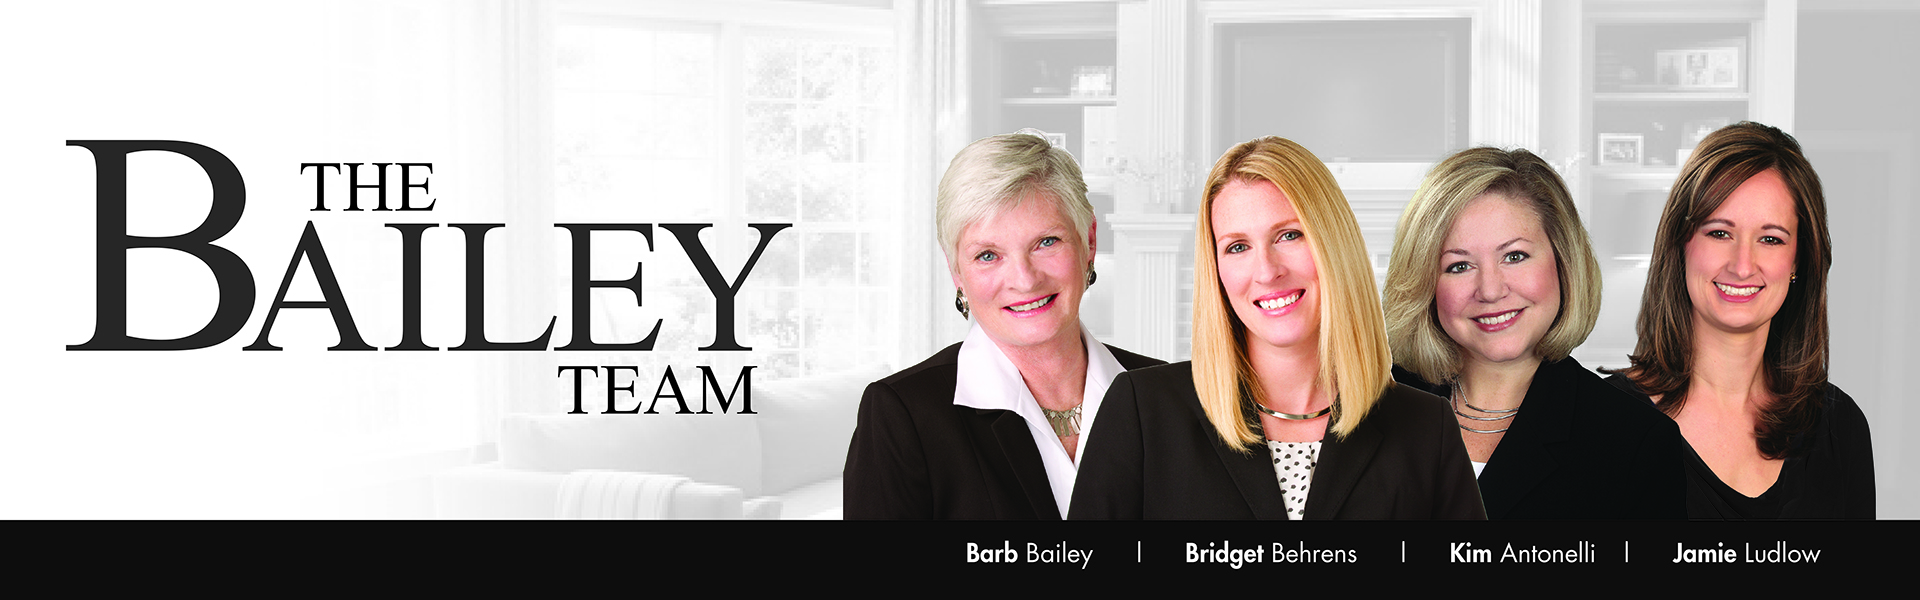 The Bailey Team